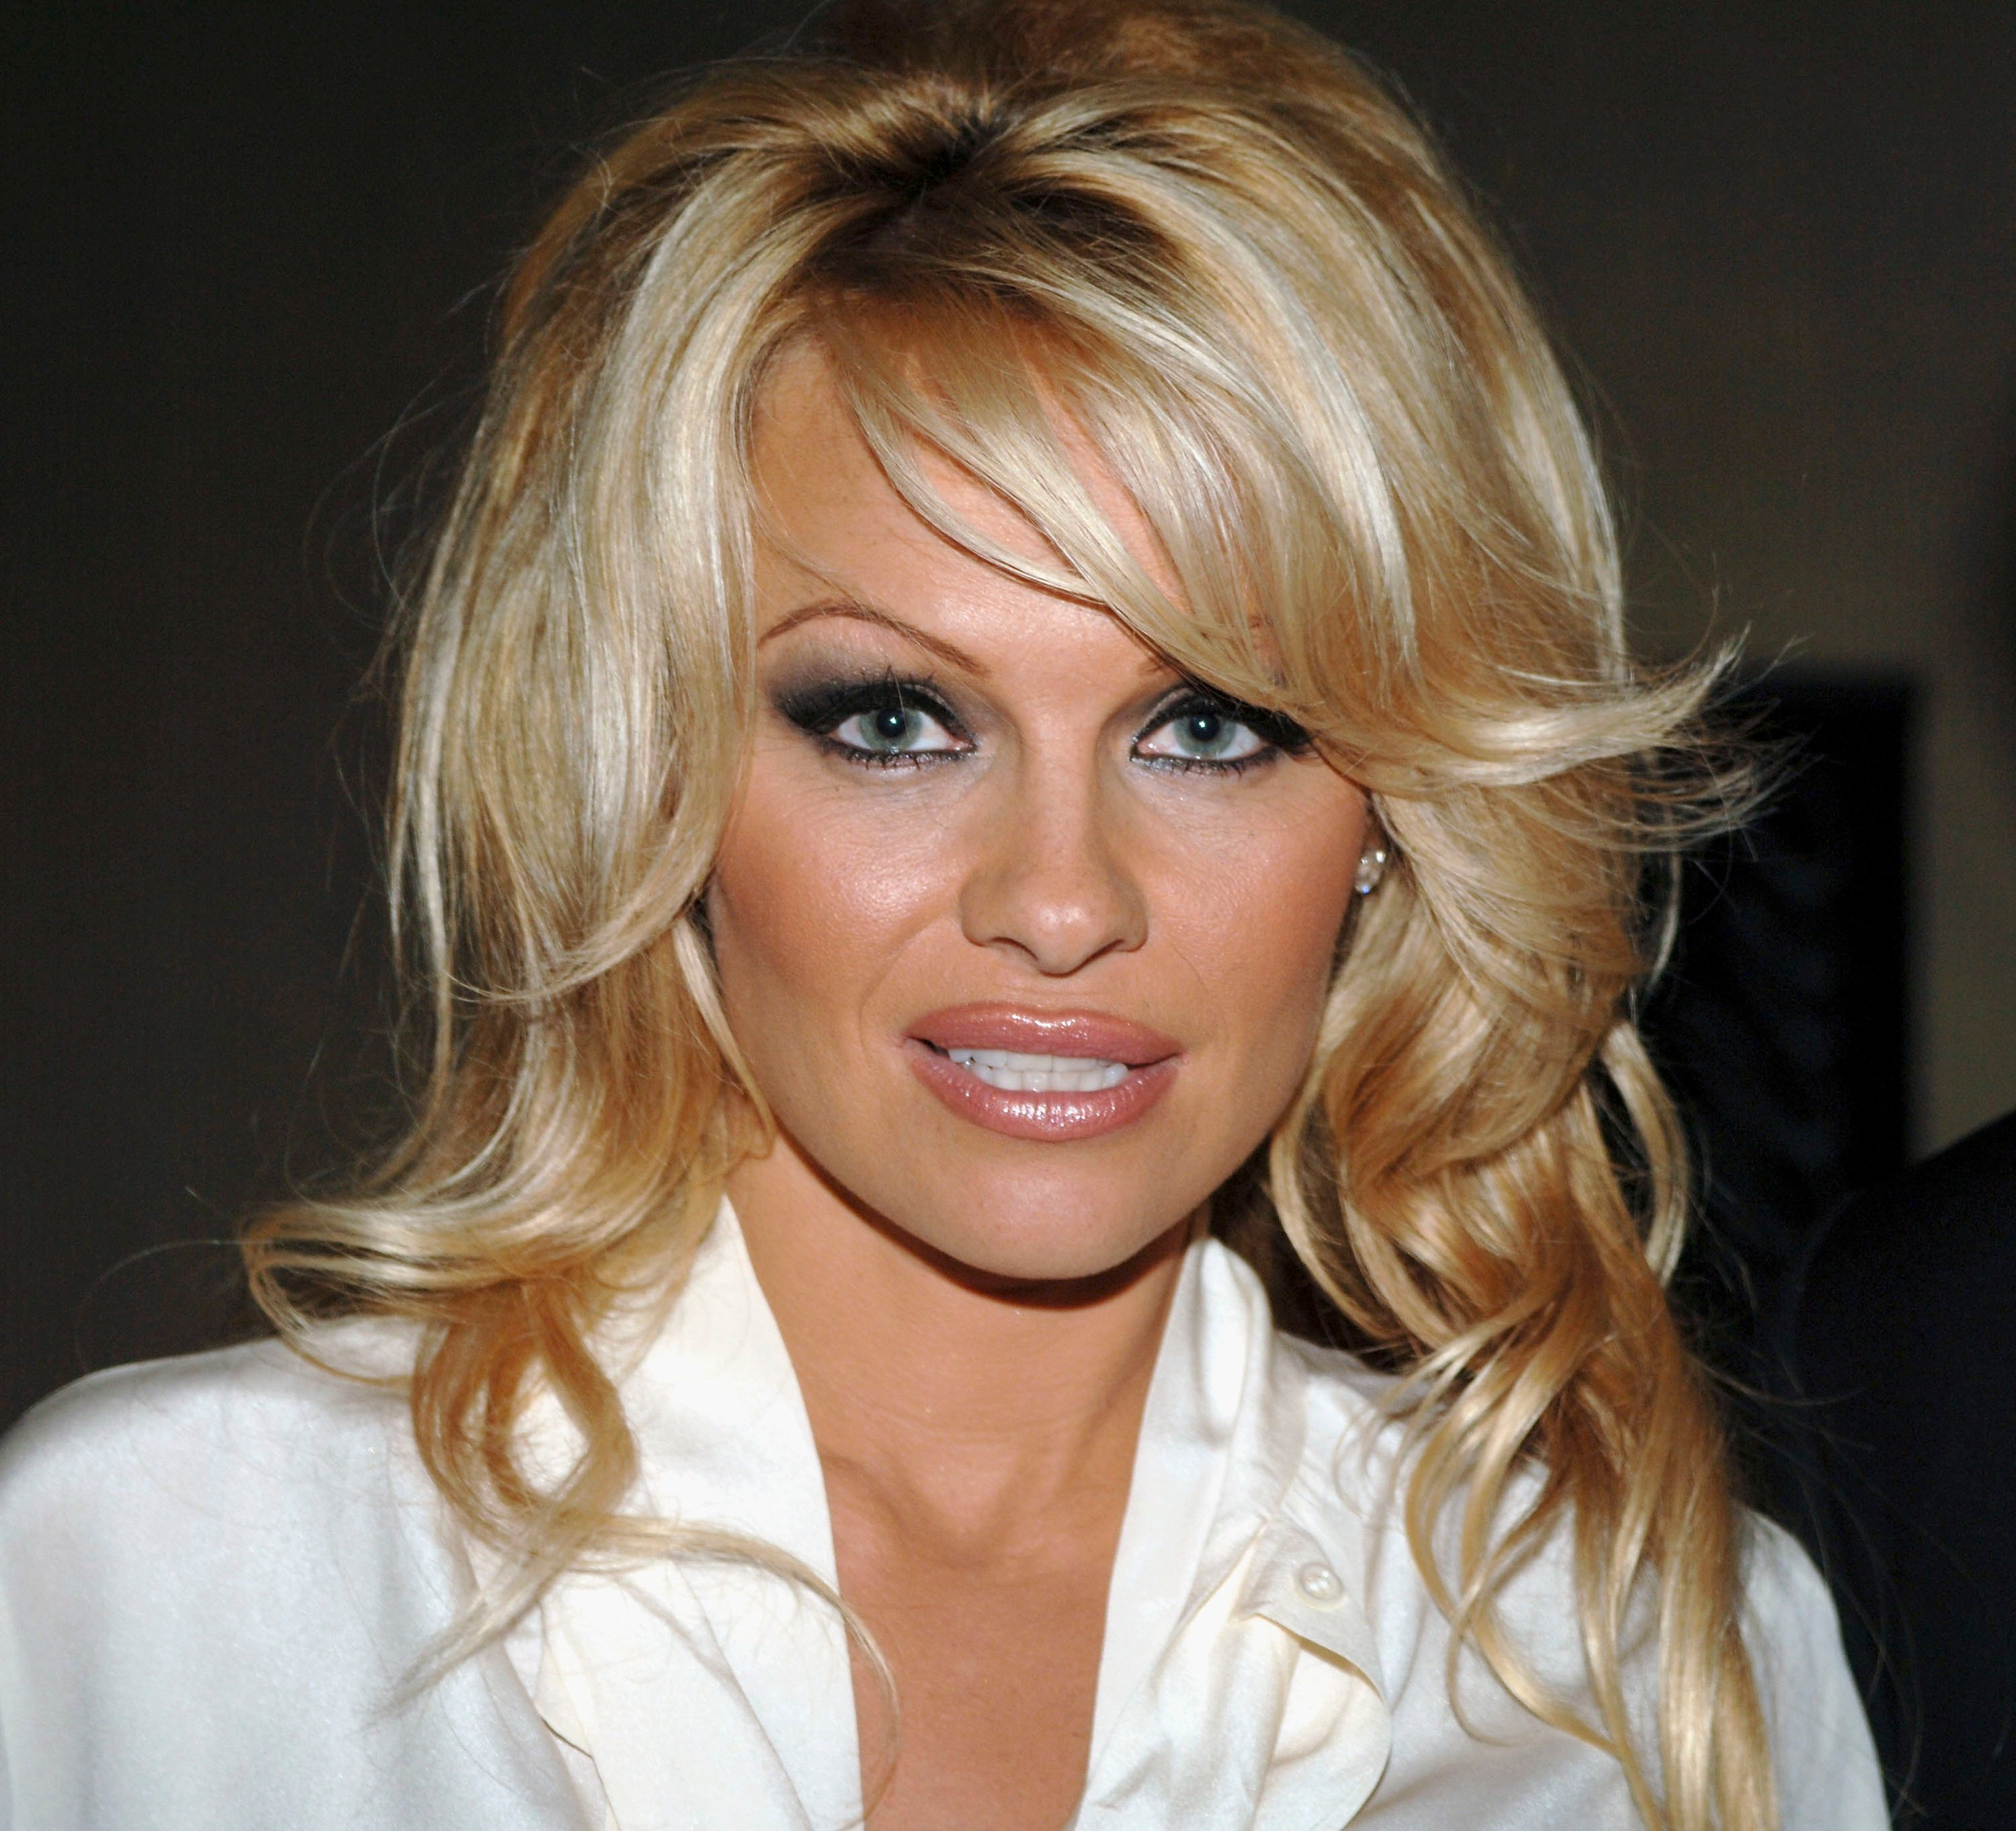 Pamela Anderson attends The Museum of Television & Radio Annual Los Angeles Gala. | Source: Getty Images